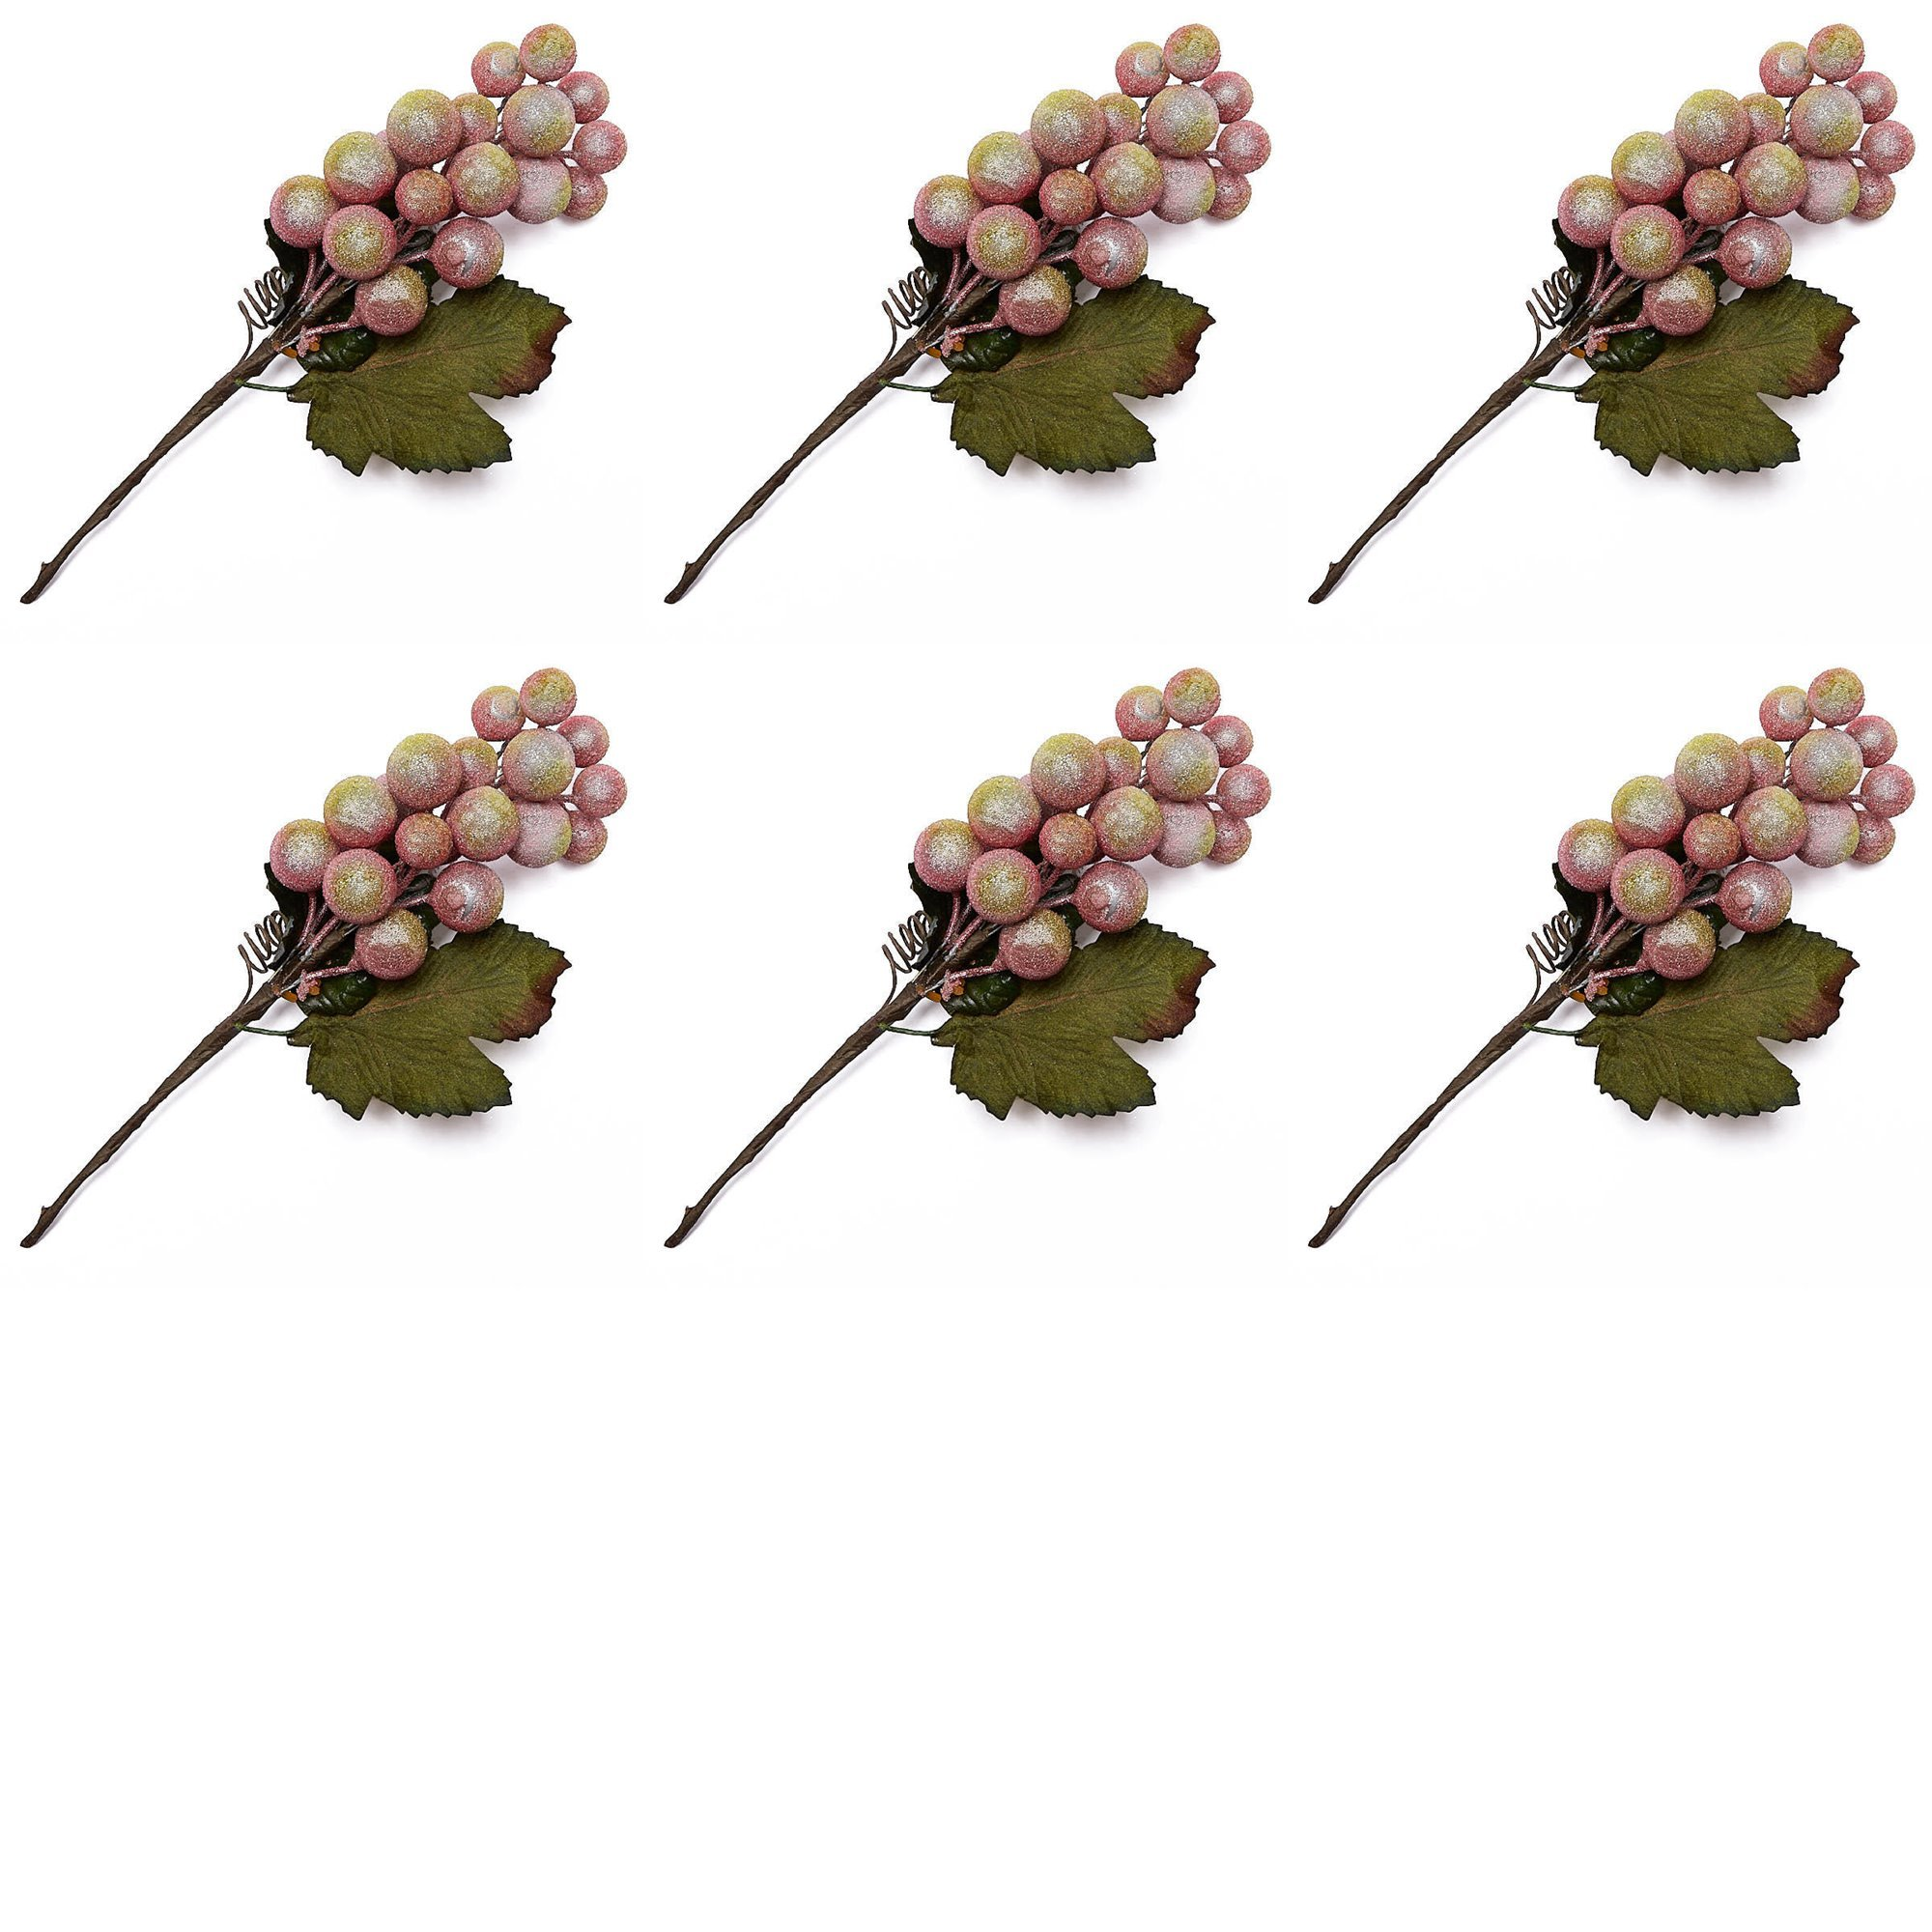 Factory Direct Craft Group of Artificial Icy Grape Cluster Picks for Holiday and Everyday Arranging - 6 Picks by Factory Direct Craft